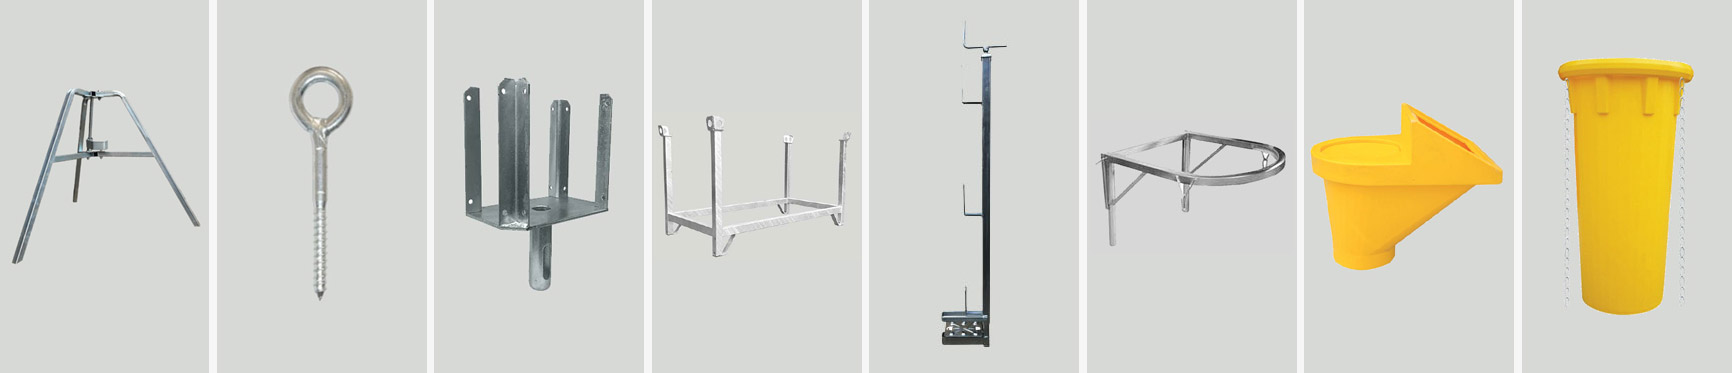 More than 100 accessories for props, scaffoldings, couplings, formworks and stacking pallets